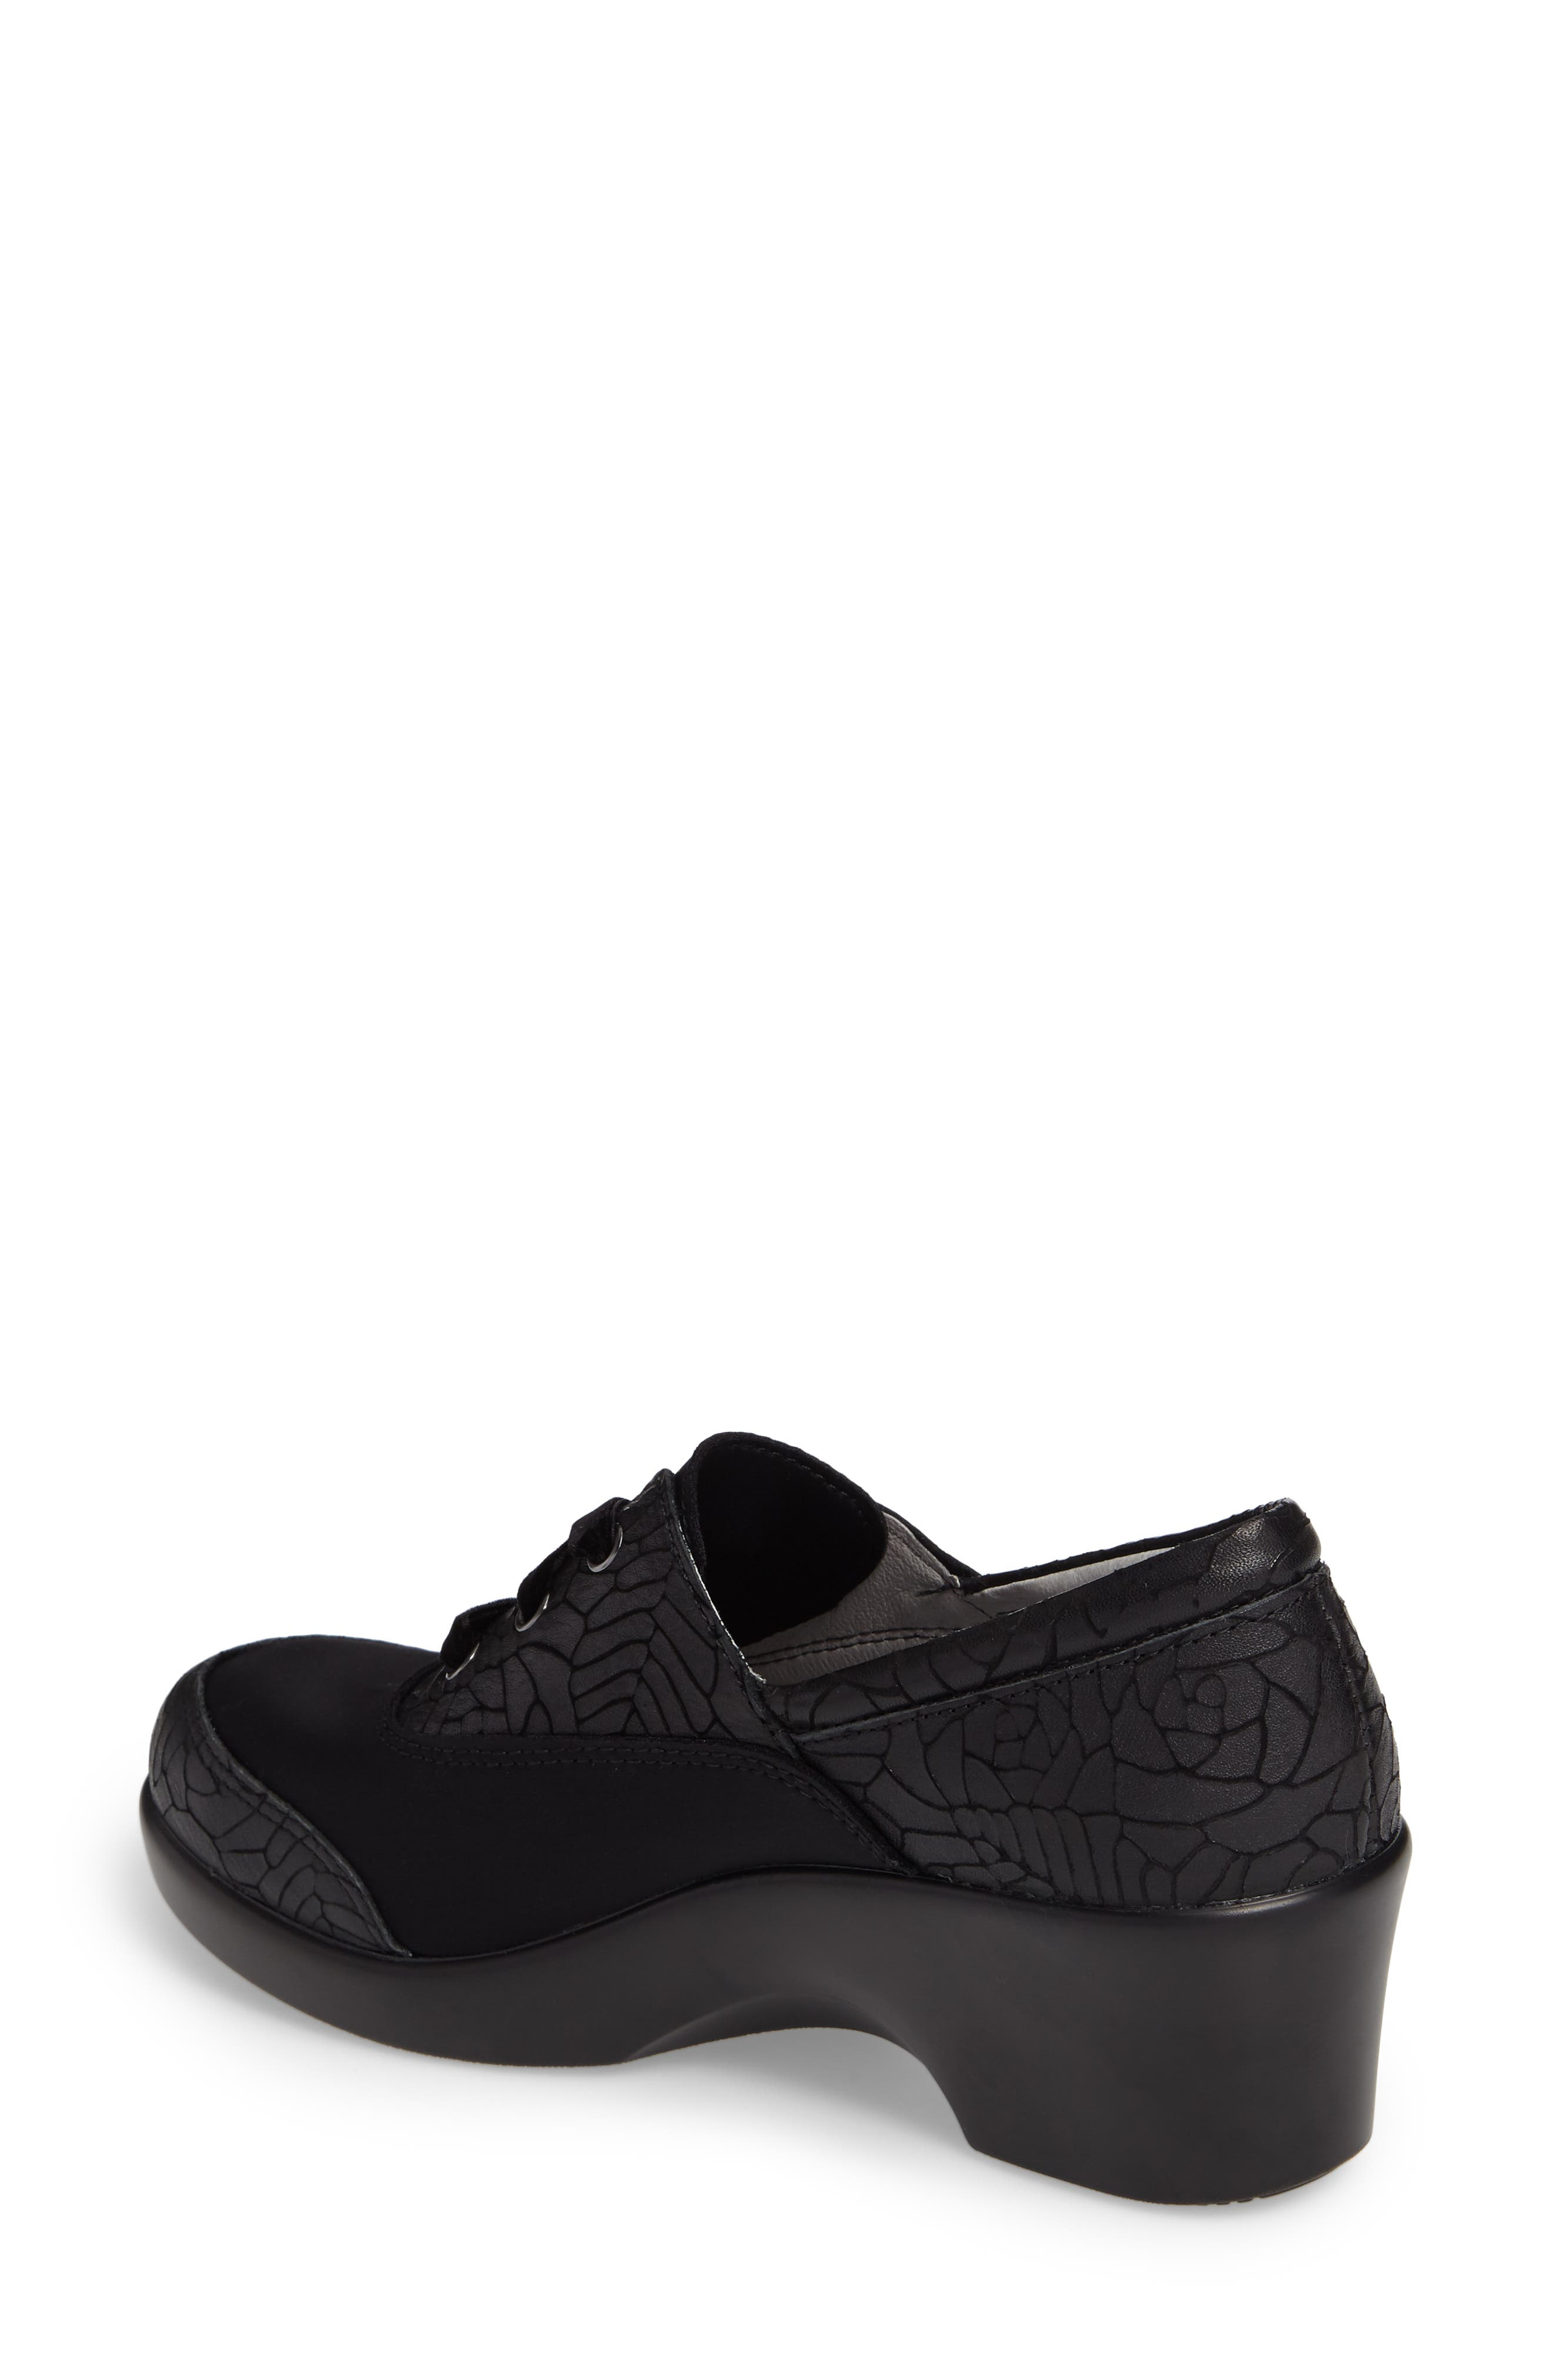 Madi Lace-Up Shoe,                             Alternate thumbnail 2, color,                             Floral Notes Leather